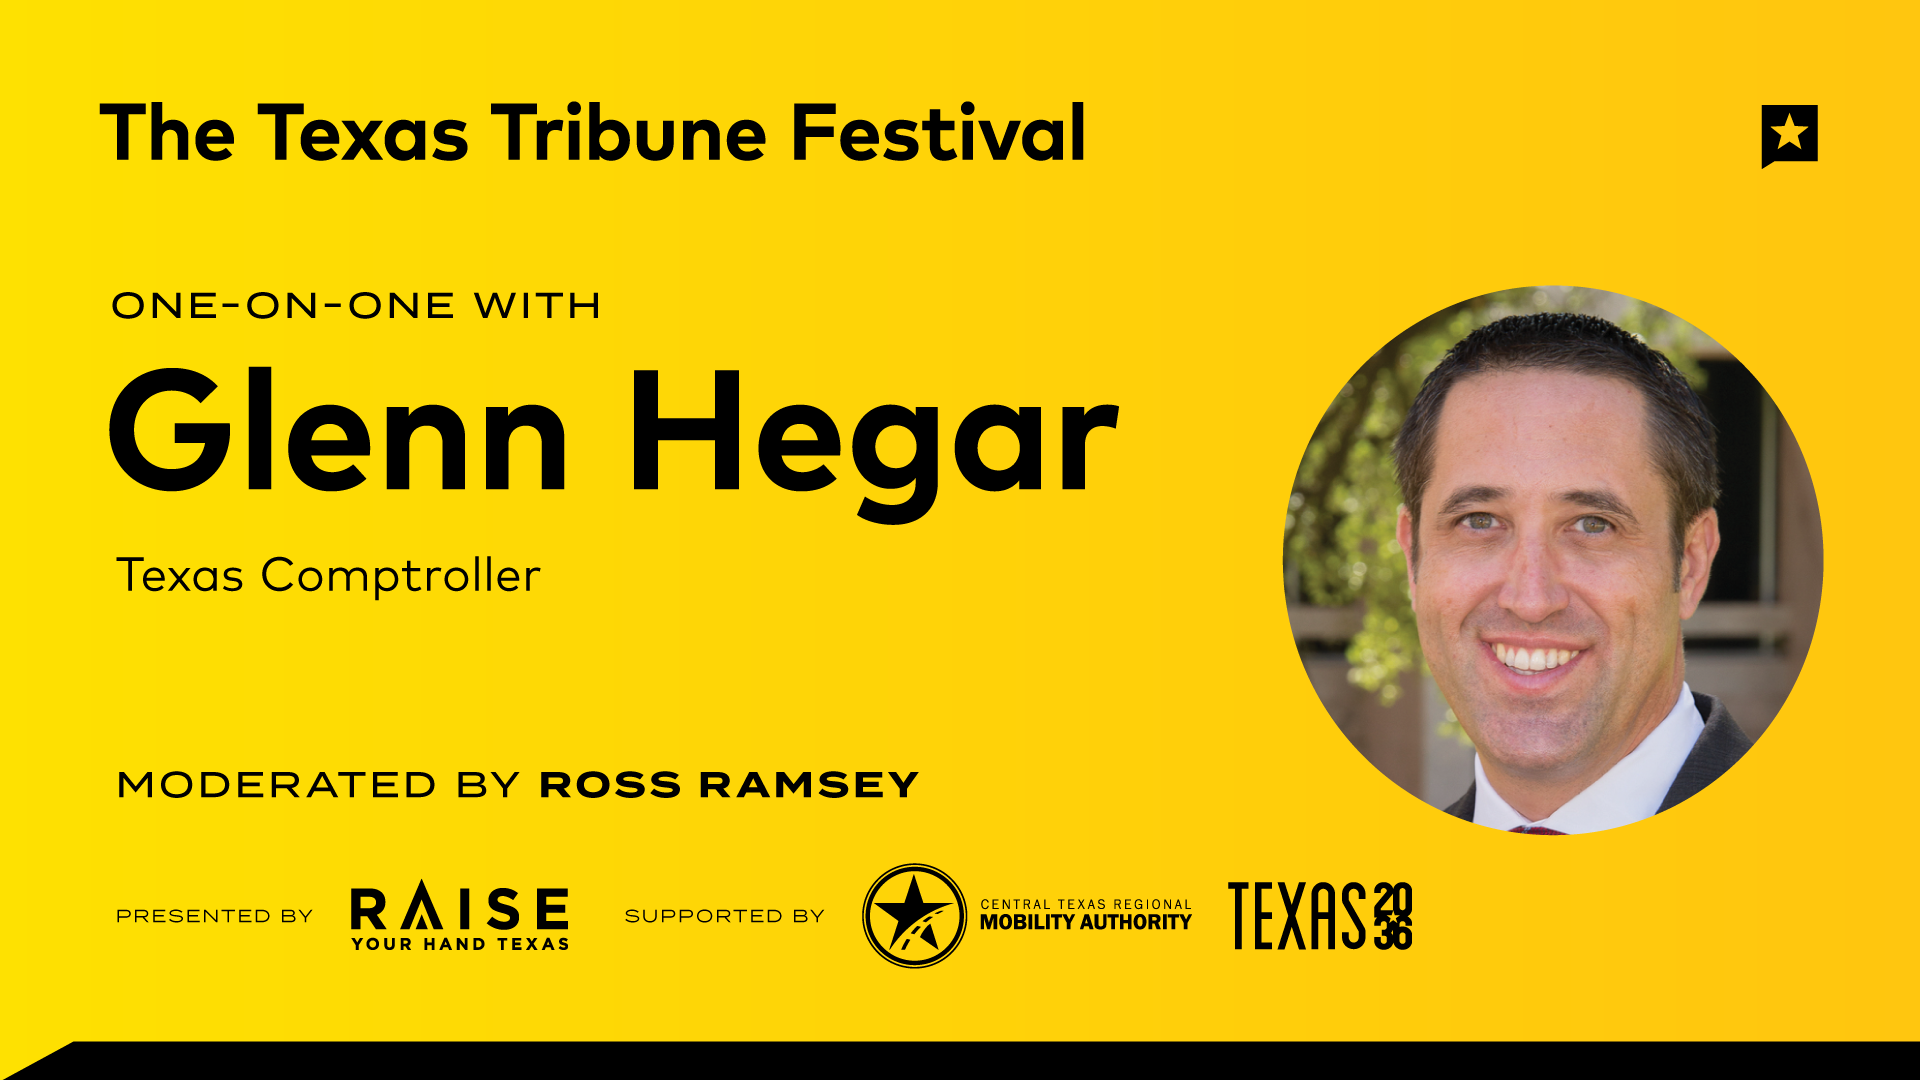 One-on-One with Glenn Hegar